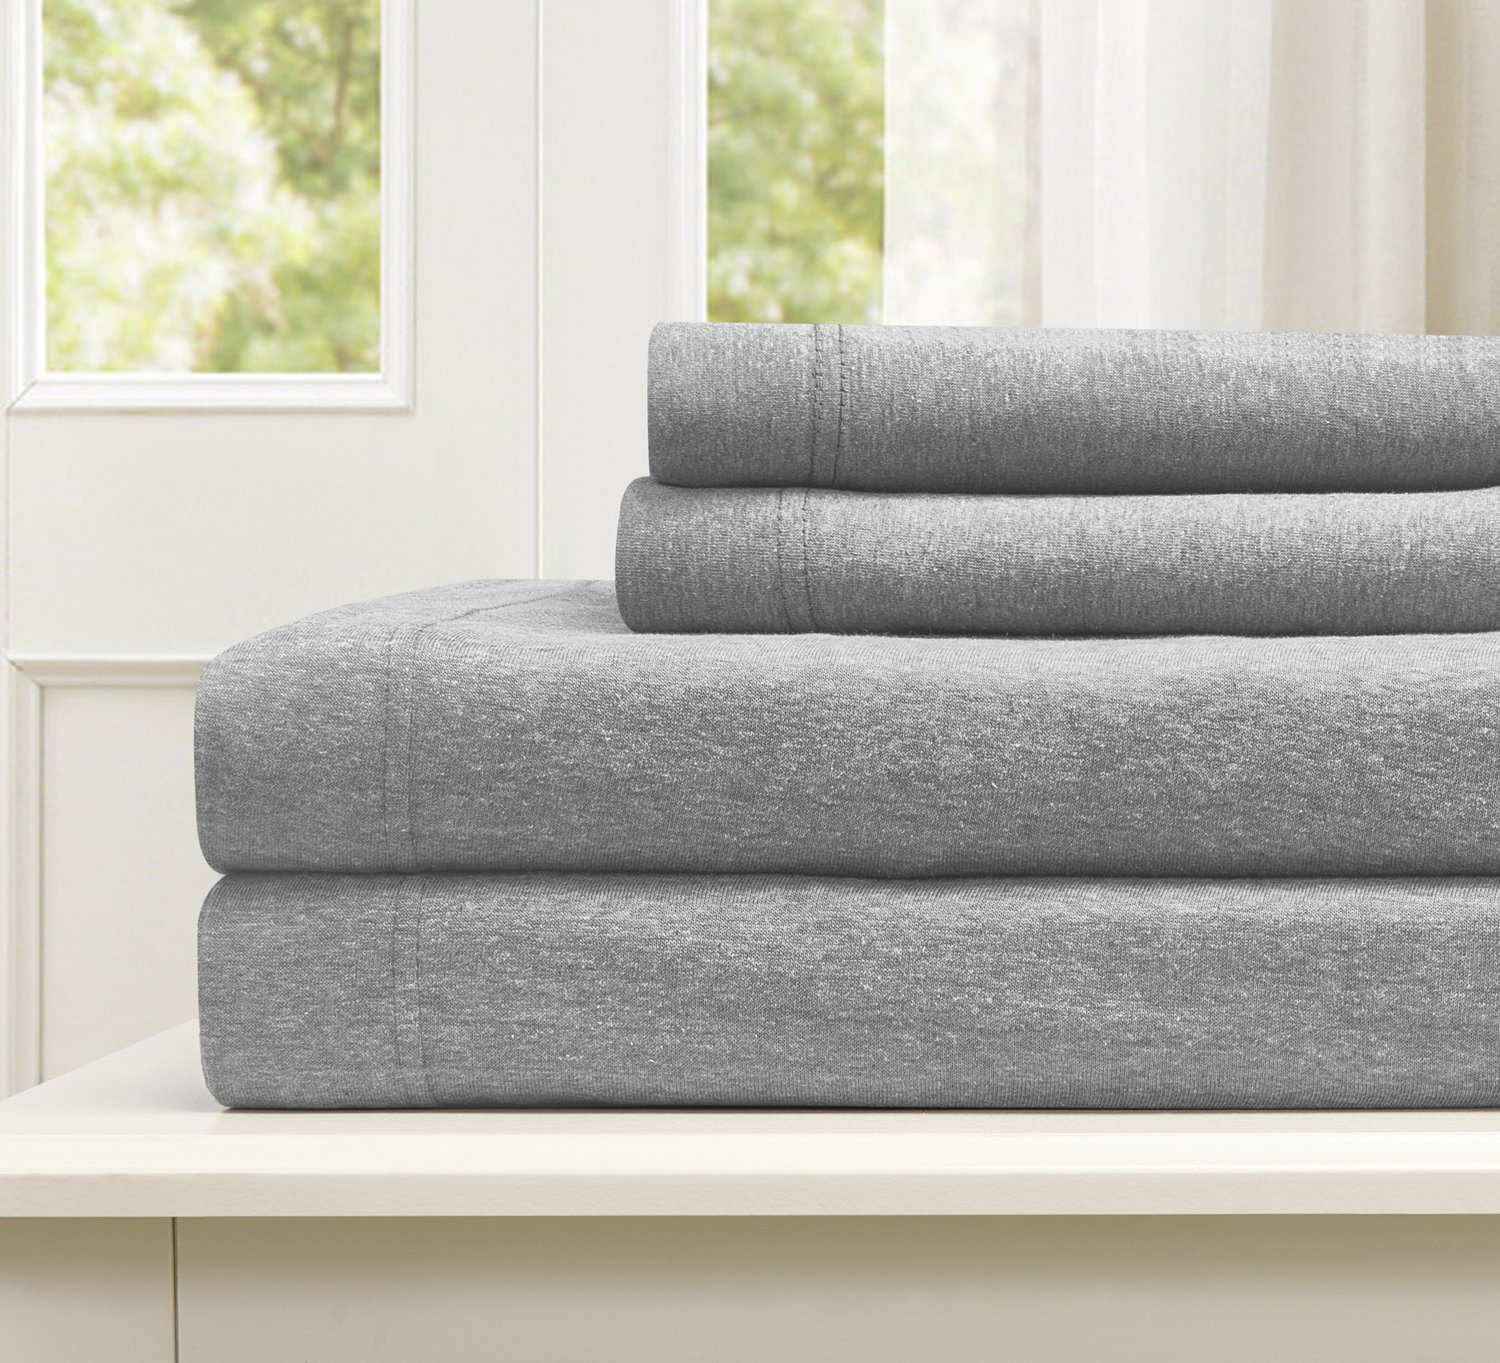 (Queen, Heather Grey) Cotton Rich T-Shirt Soft Heather Jersey Knit Sheet set All Season Bed Sheets, Super Comfortable, Warm and Cosy By Morgan Home Fashions (Queen, Heather Grey) B075NPDW6T クイーン ヘザーグレー ヘザーグレー クイーン